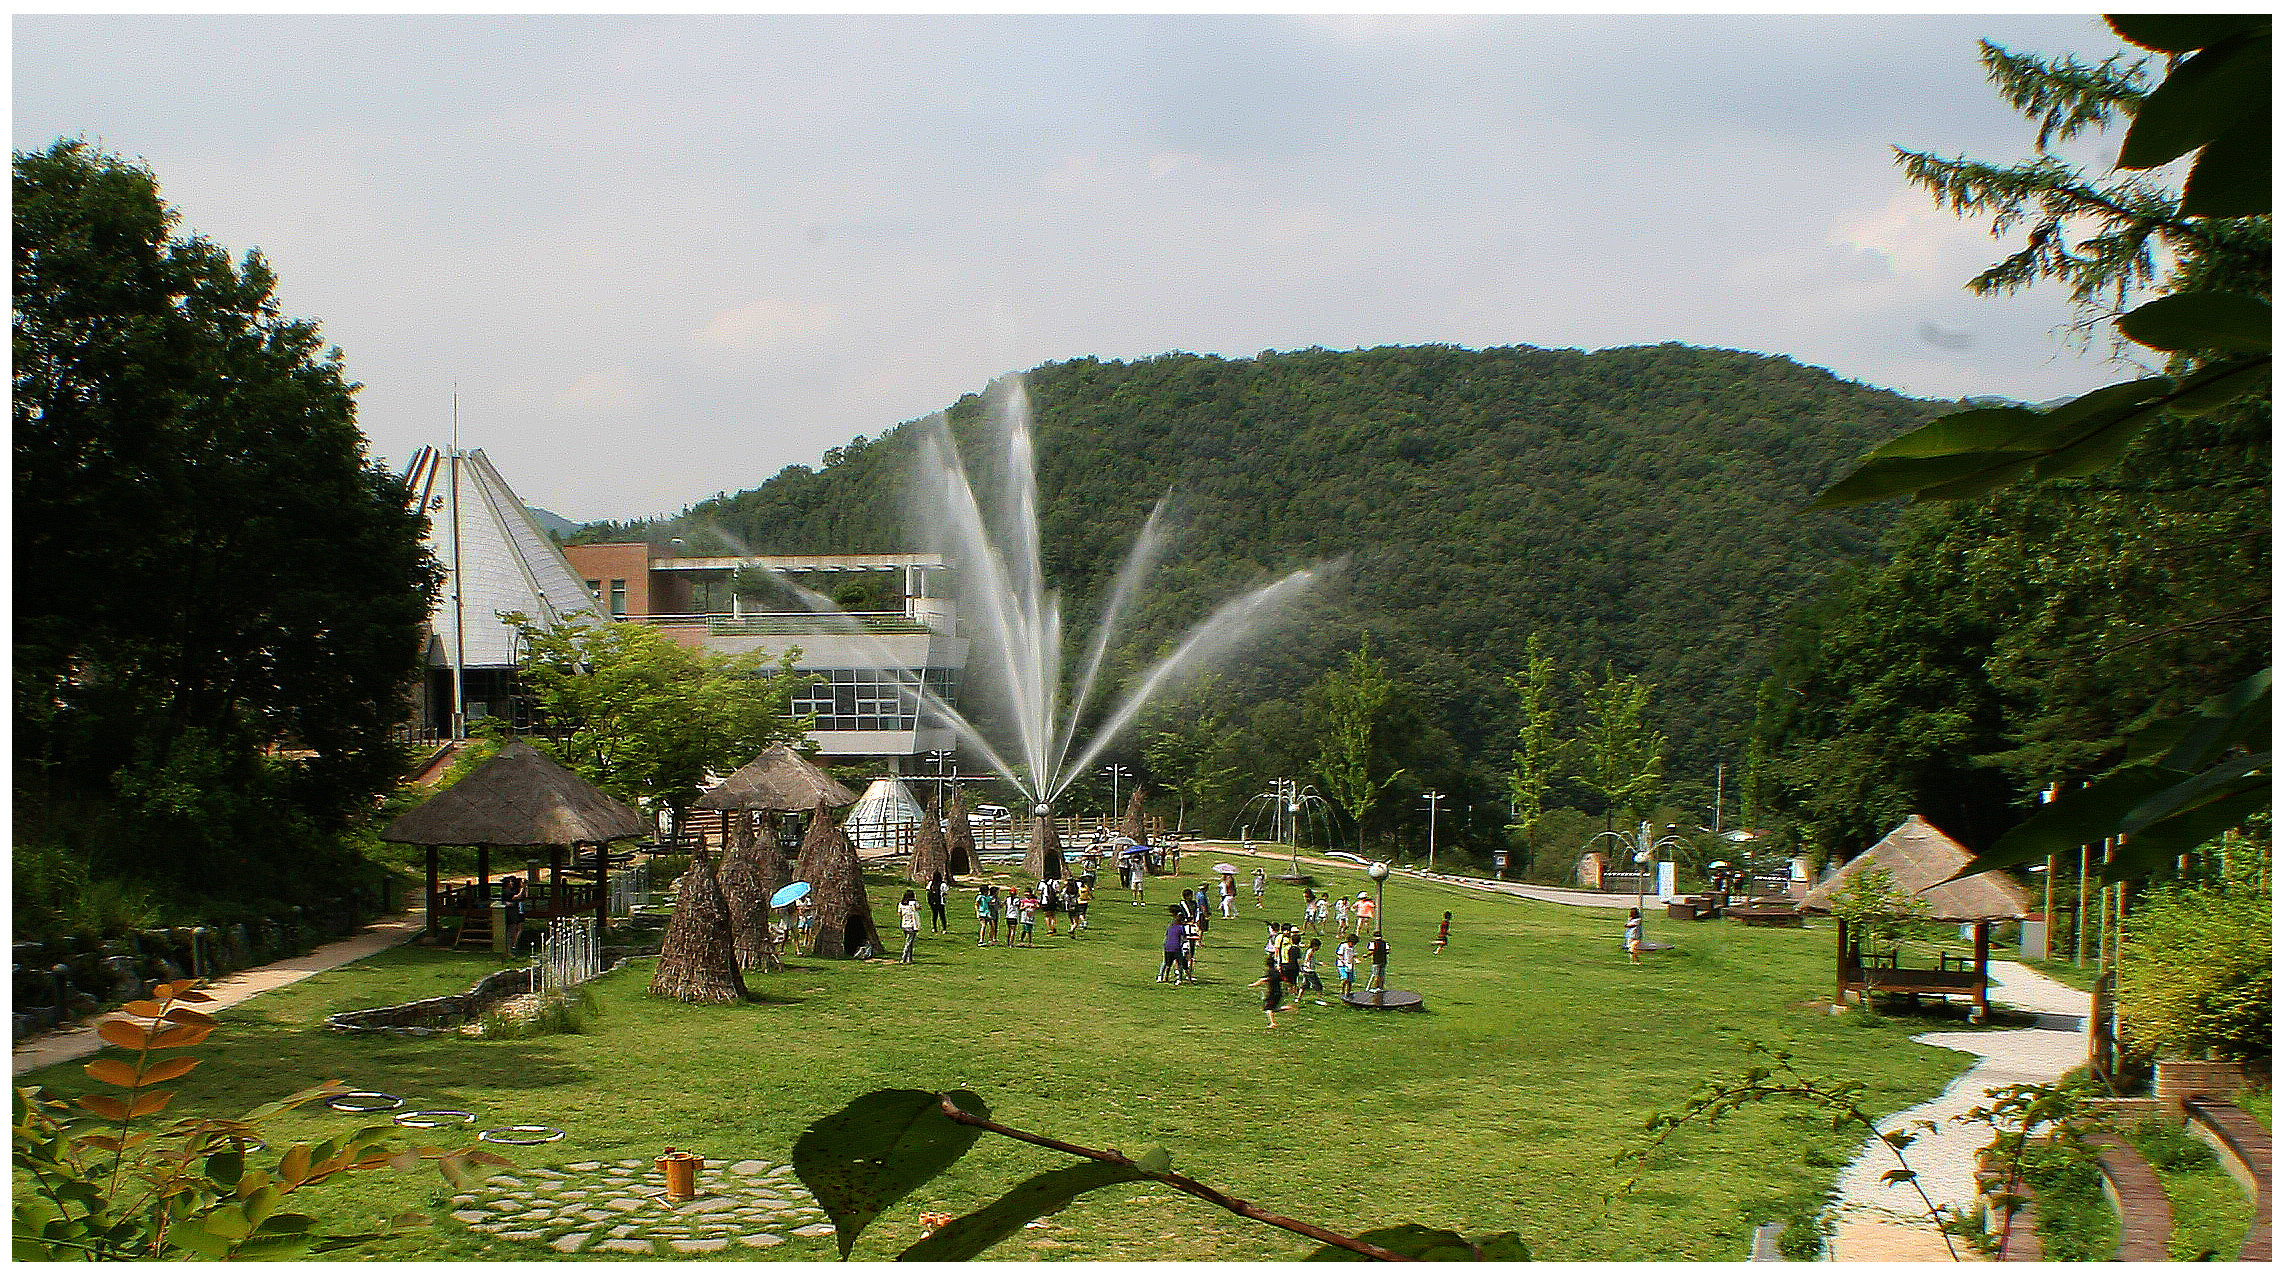 An open view of Sonagi Village with various small shanties. A big fountain is operating now and lots of people are looking around there.